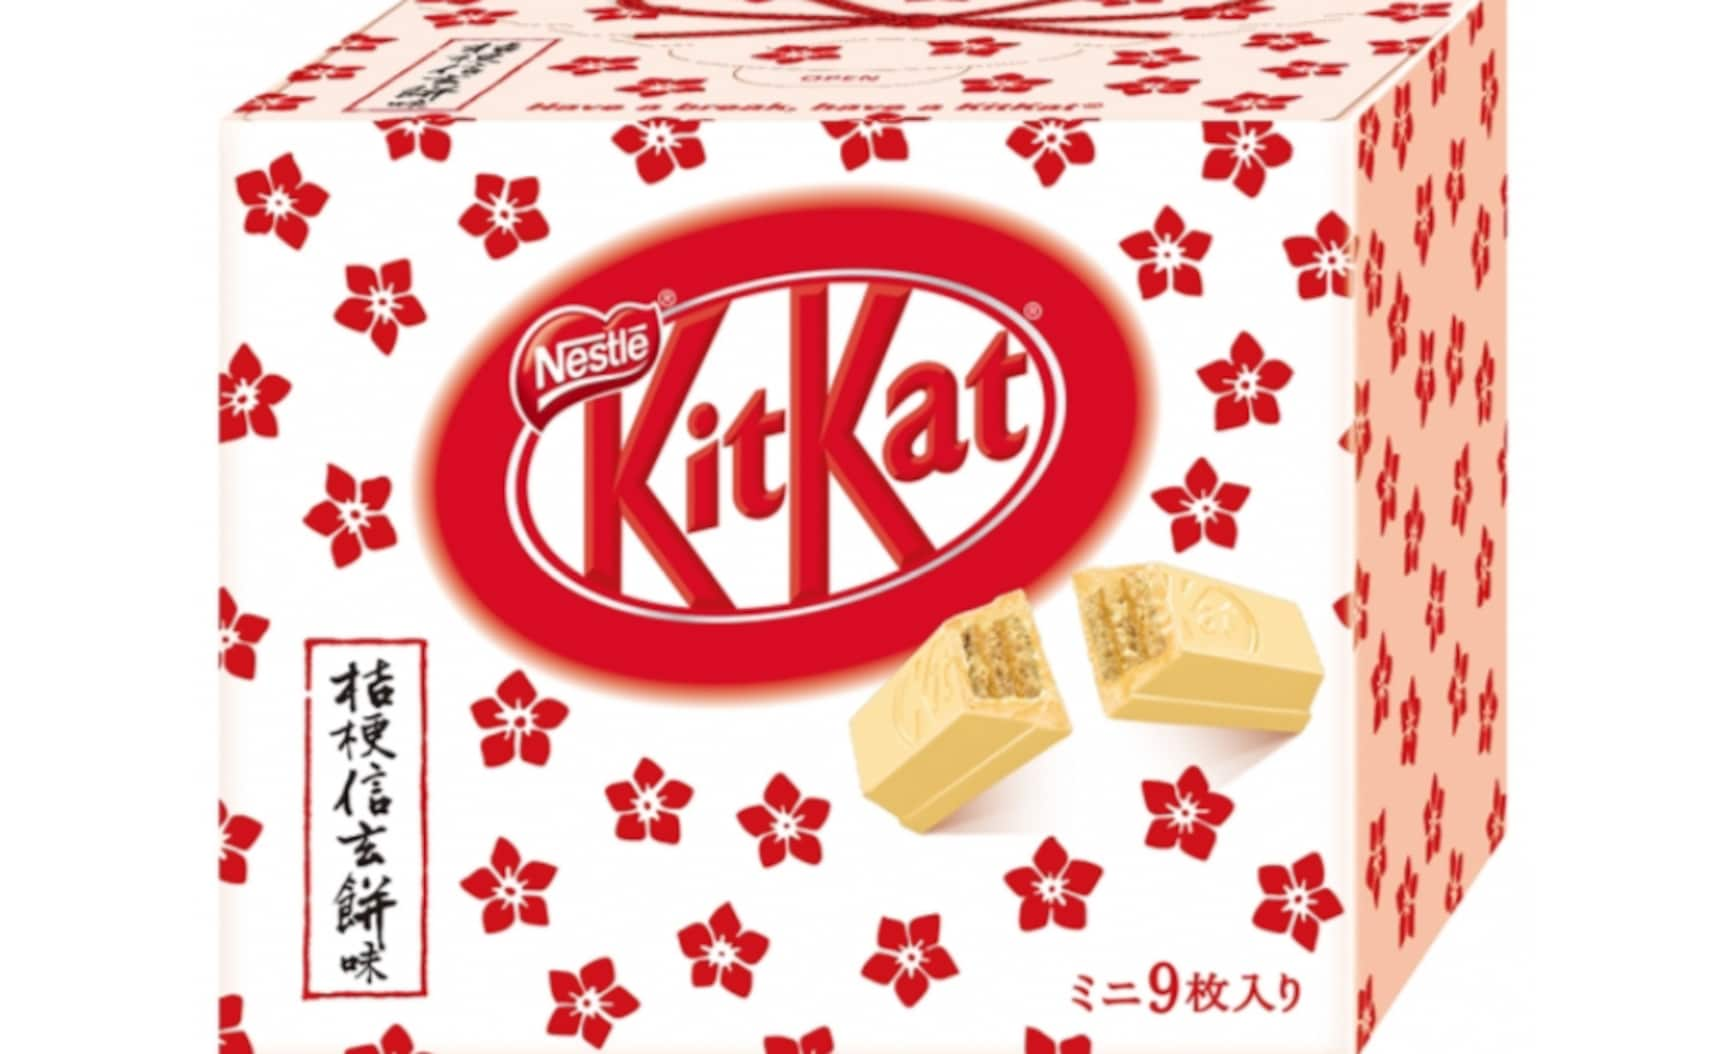 New Kit Kat Captures the Flavor of Tradition